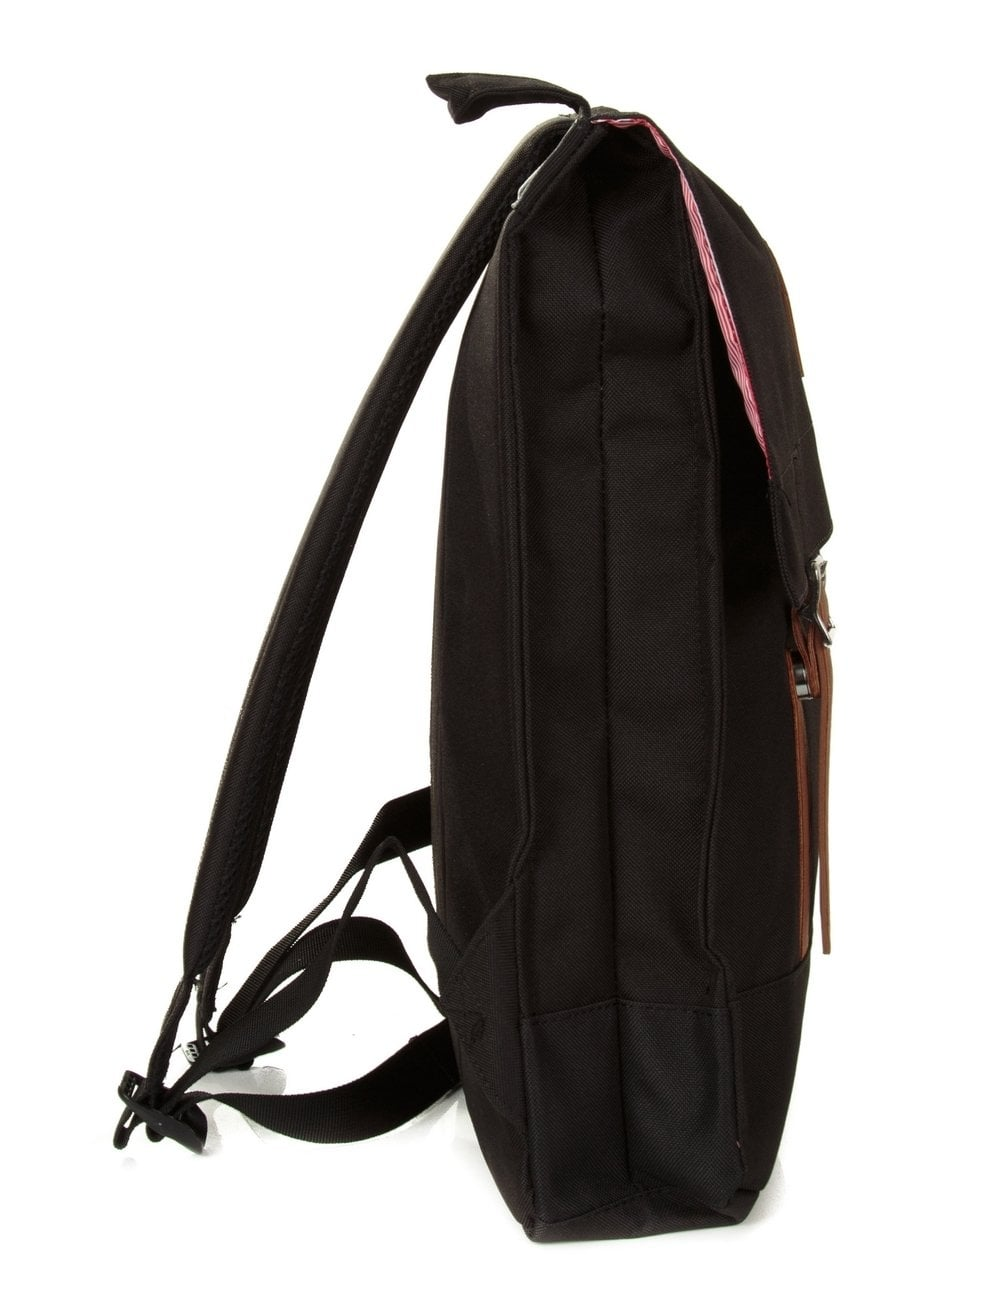 ea35ade5a97 Herschel Supply Co Survey Backpack - Black Tan - Accessories from ...